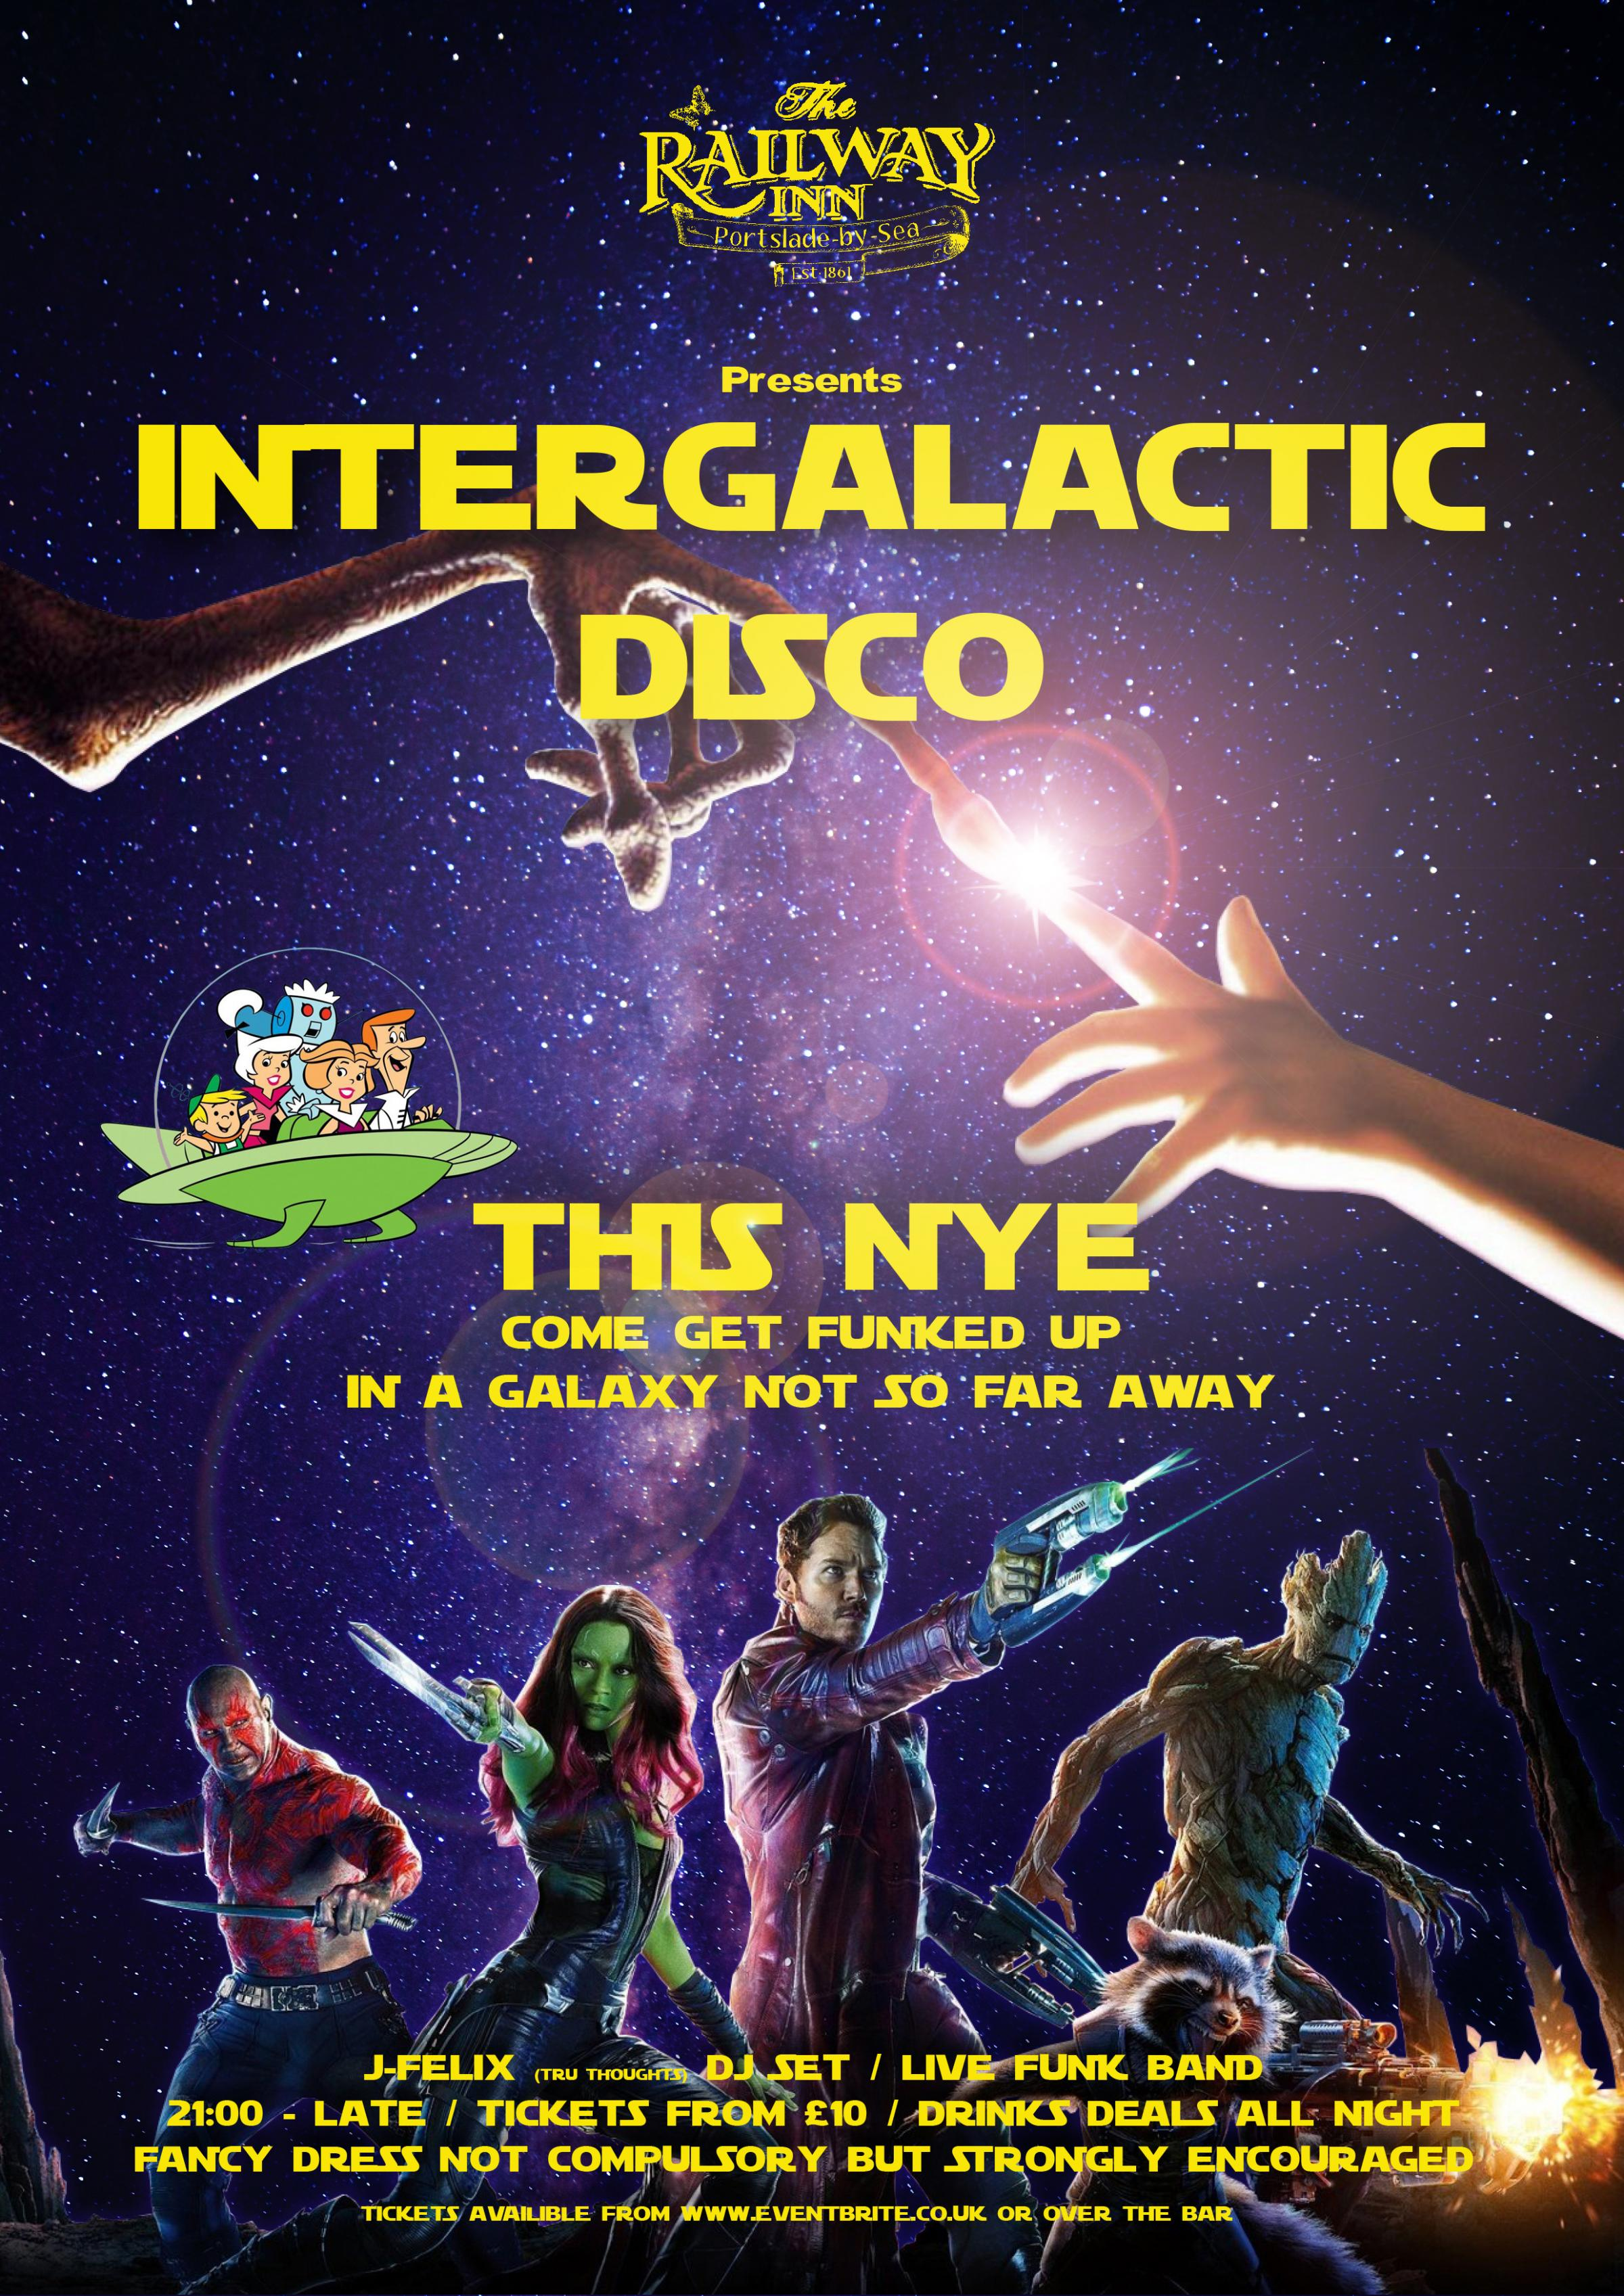 Intergalactic Disco New Years Eve